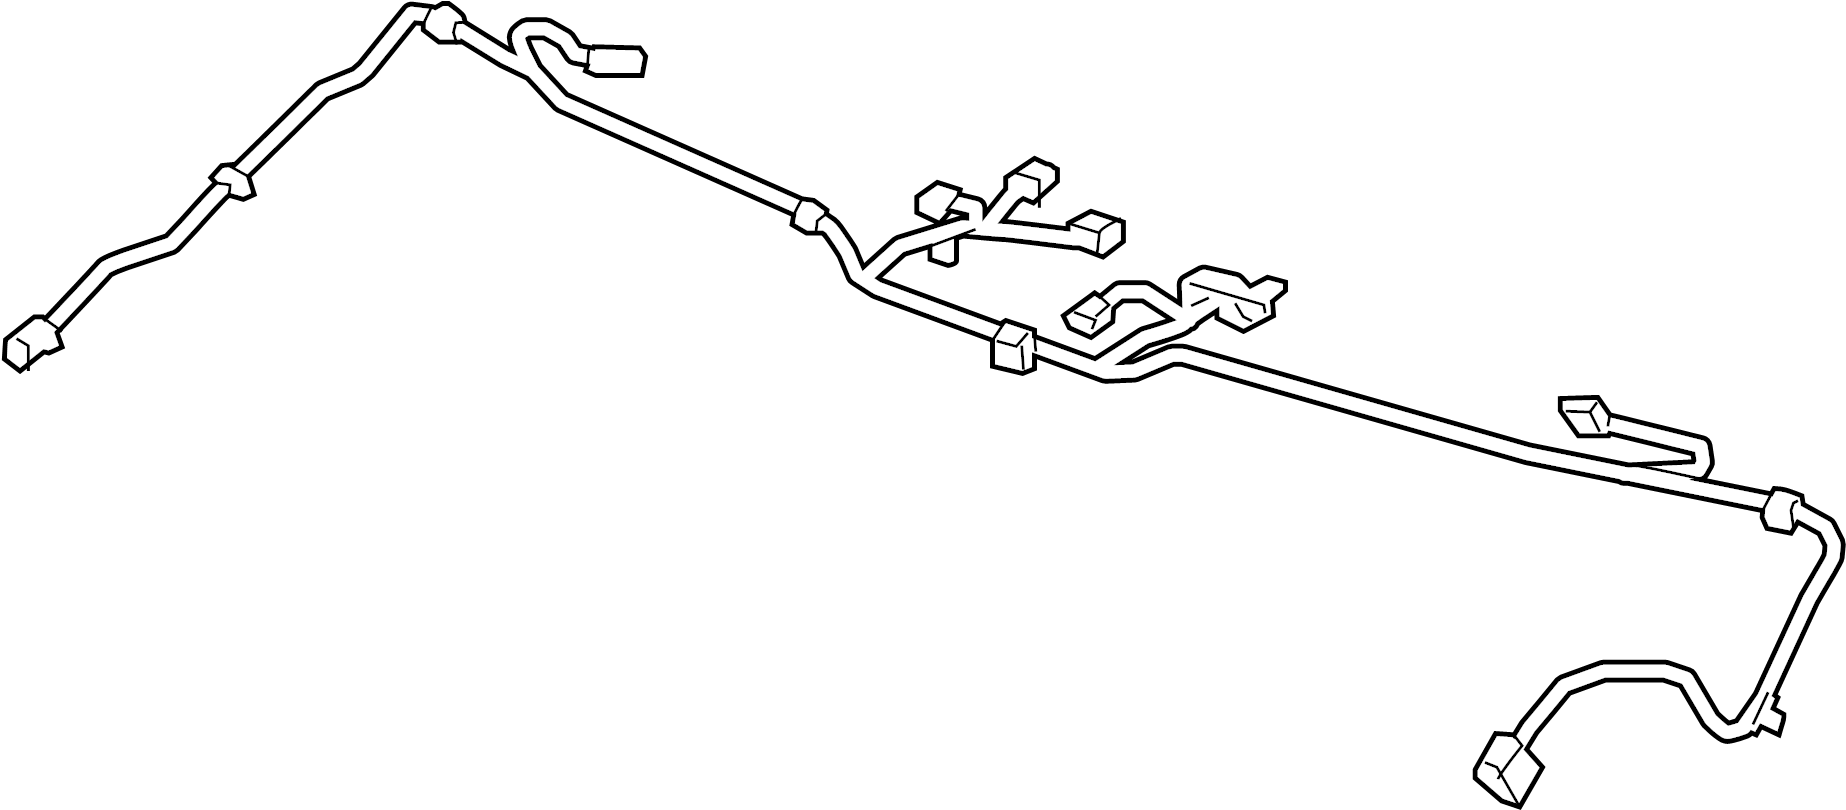 Chevrolet Camaro Console Wiring Harness Convertible 2nd